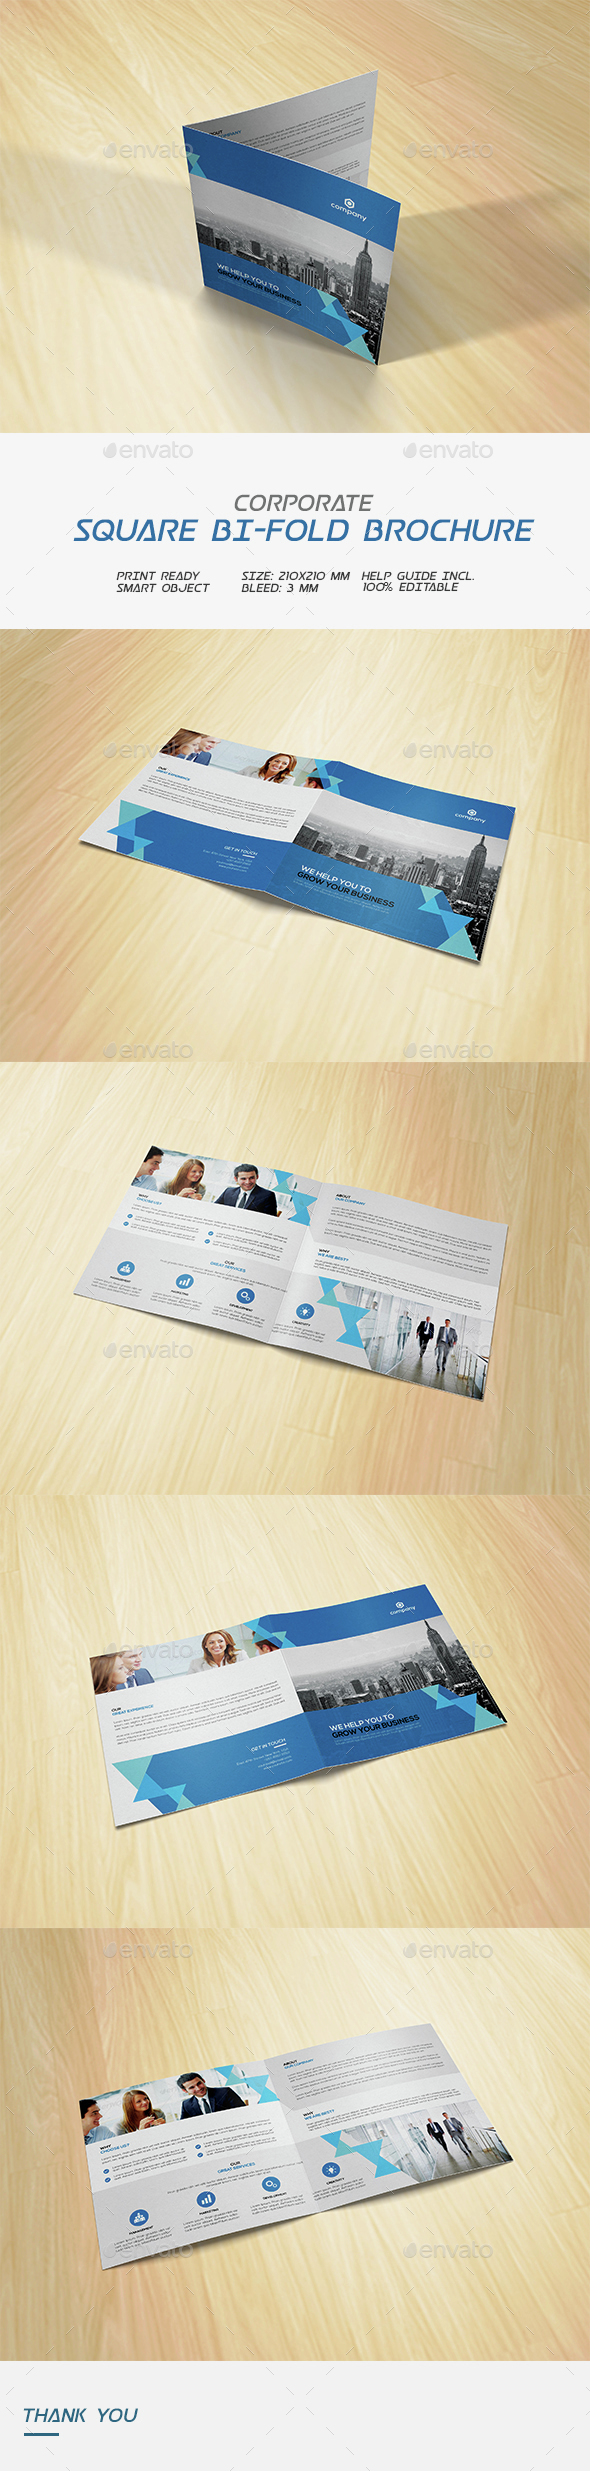 Square Corporate Bi-fold Brochure - Corporate Brochures